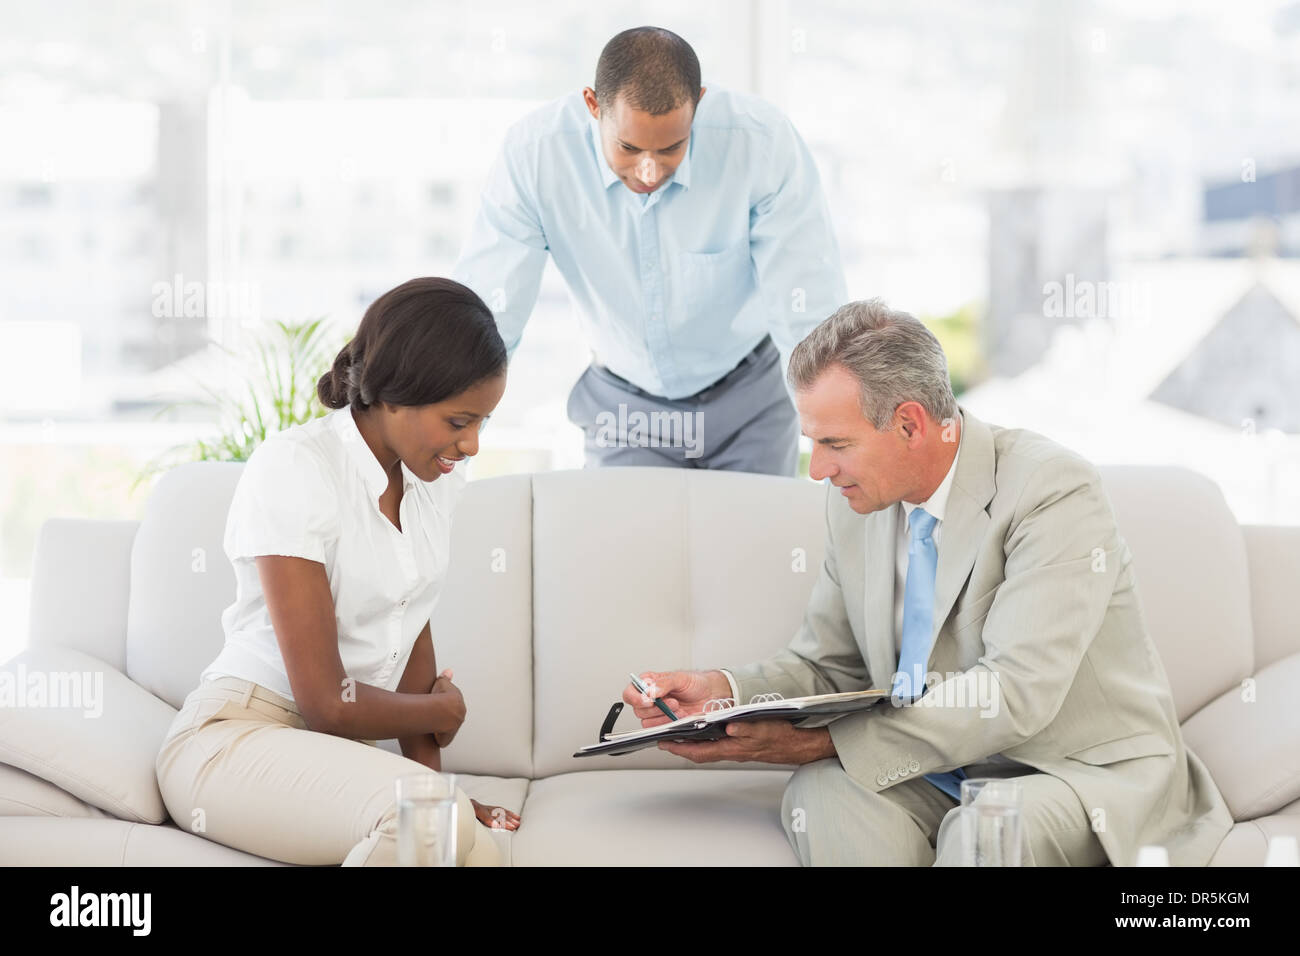 Salesman showing client where to sign the paperwork - Stock Image